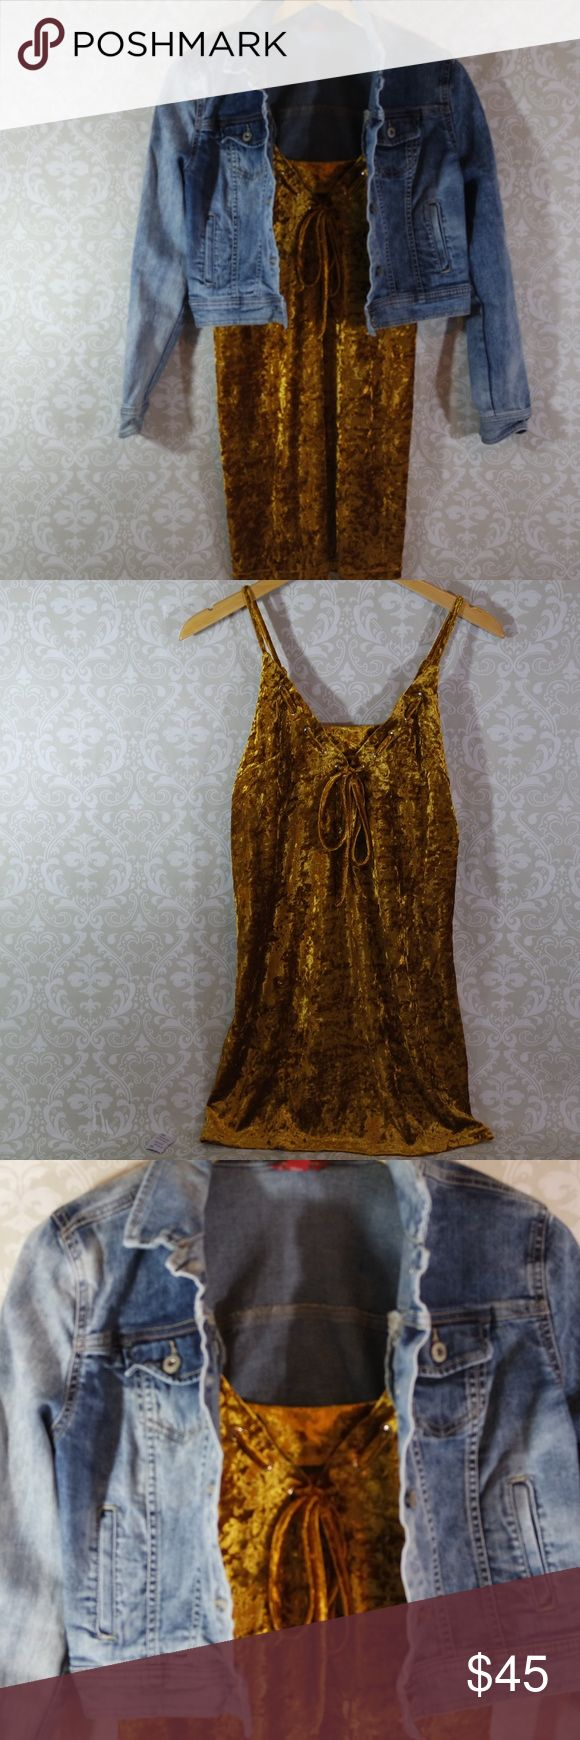 Trendy Gold Velour Spaghetti Strap Dress Sz S & M Gorgeous gold or mustard color spaghetti strap velour dress.  Adjustable straps and tie front.  Perfect for a night out on the town.  Velour fabric has a quality feel.  Terrific with a denim jacket and boots or heels.  True to size.  Stand out for all the right reasons. April Spirit Dresses Mini